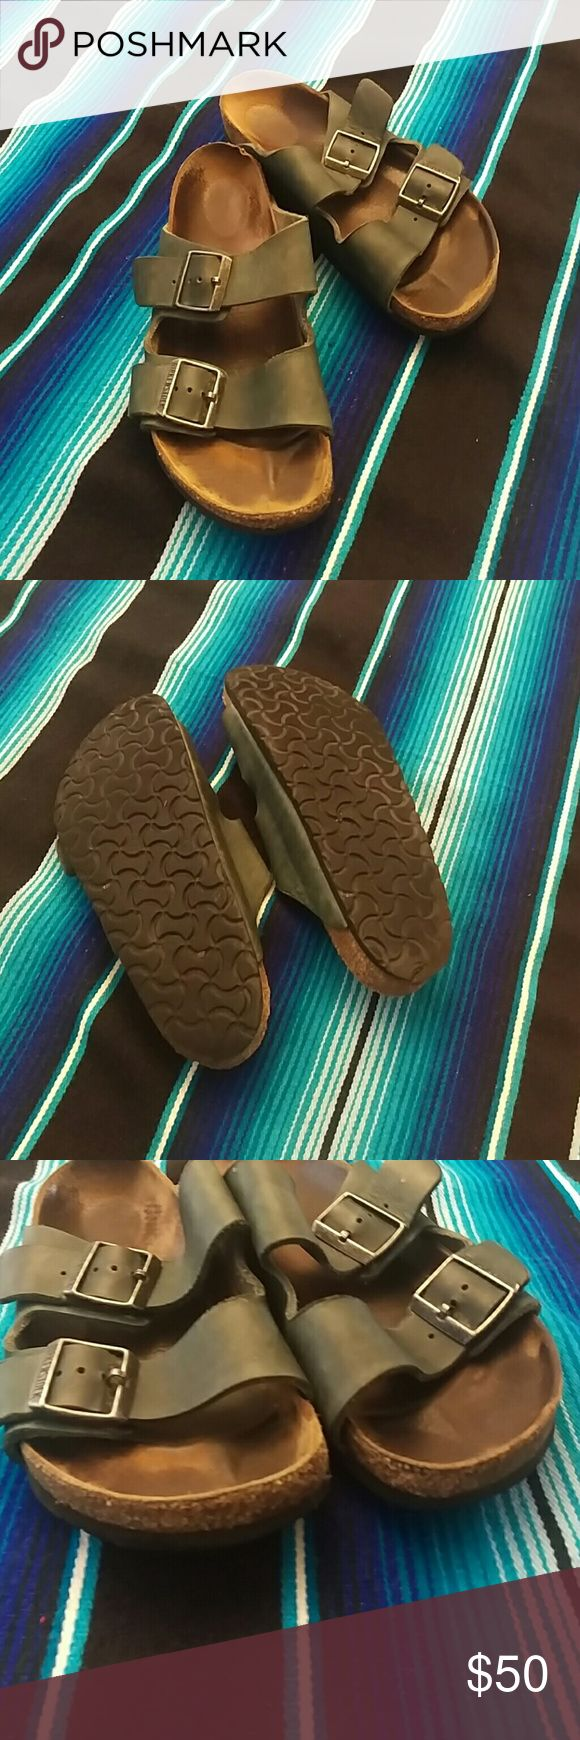 Vintage forest green birkenstocks Leather straps are in good shape. There is wear on the heel, shown in pictures.  Sole recently clean and leather condition. Birkenstock Shoes Sandals